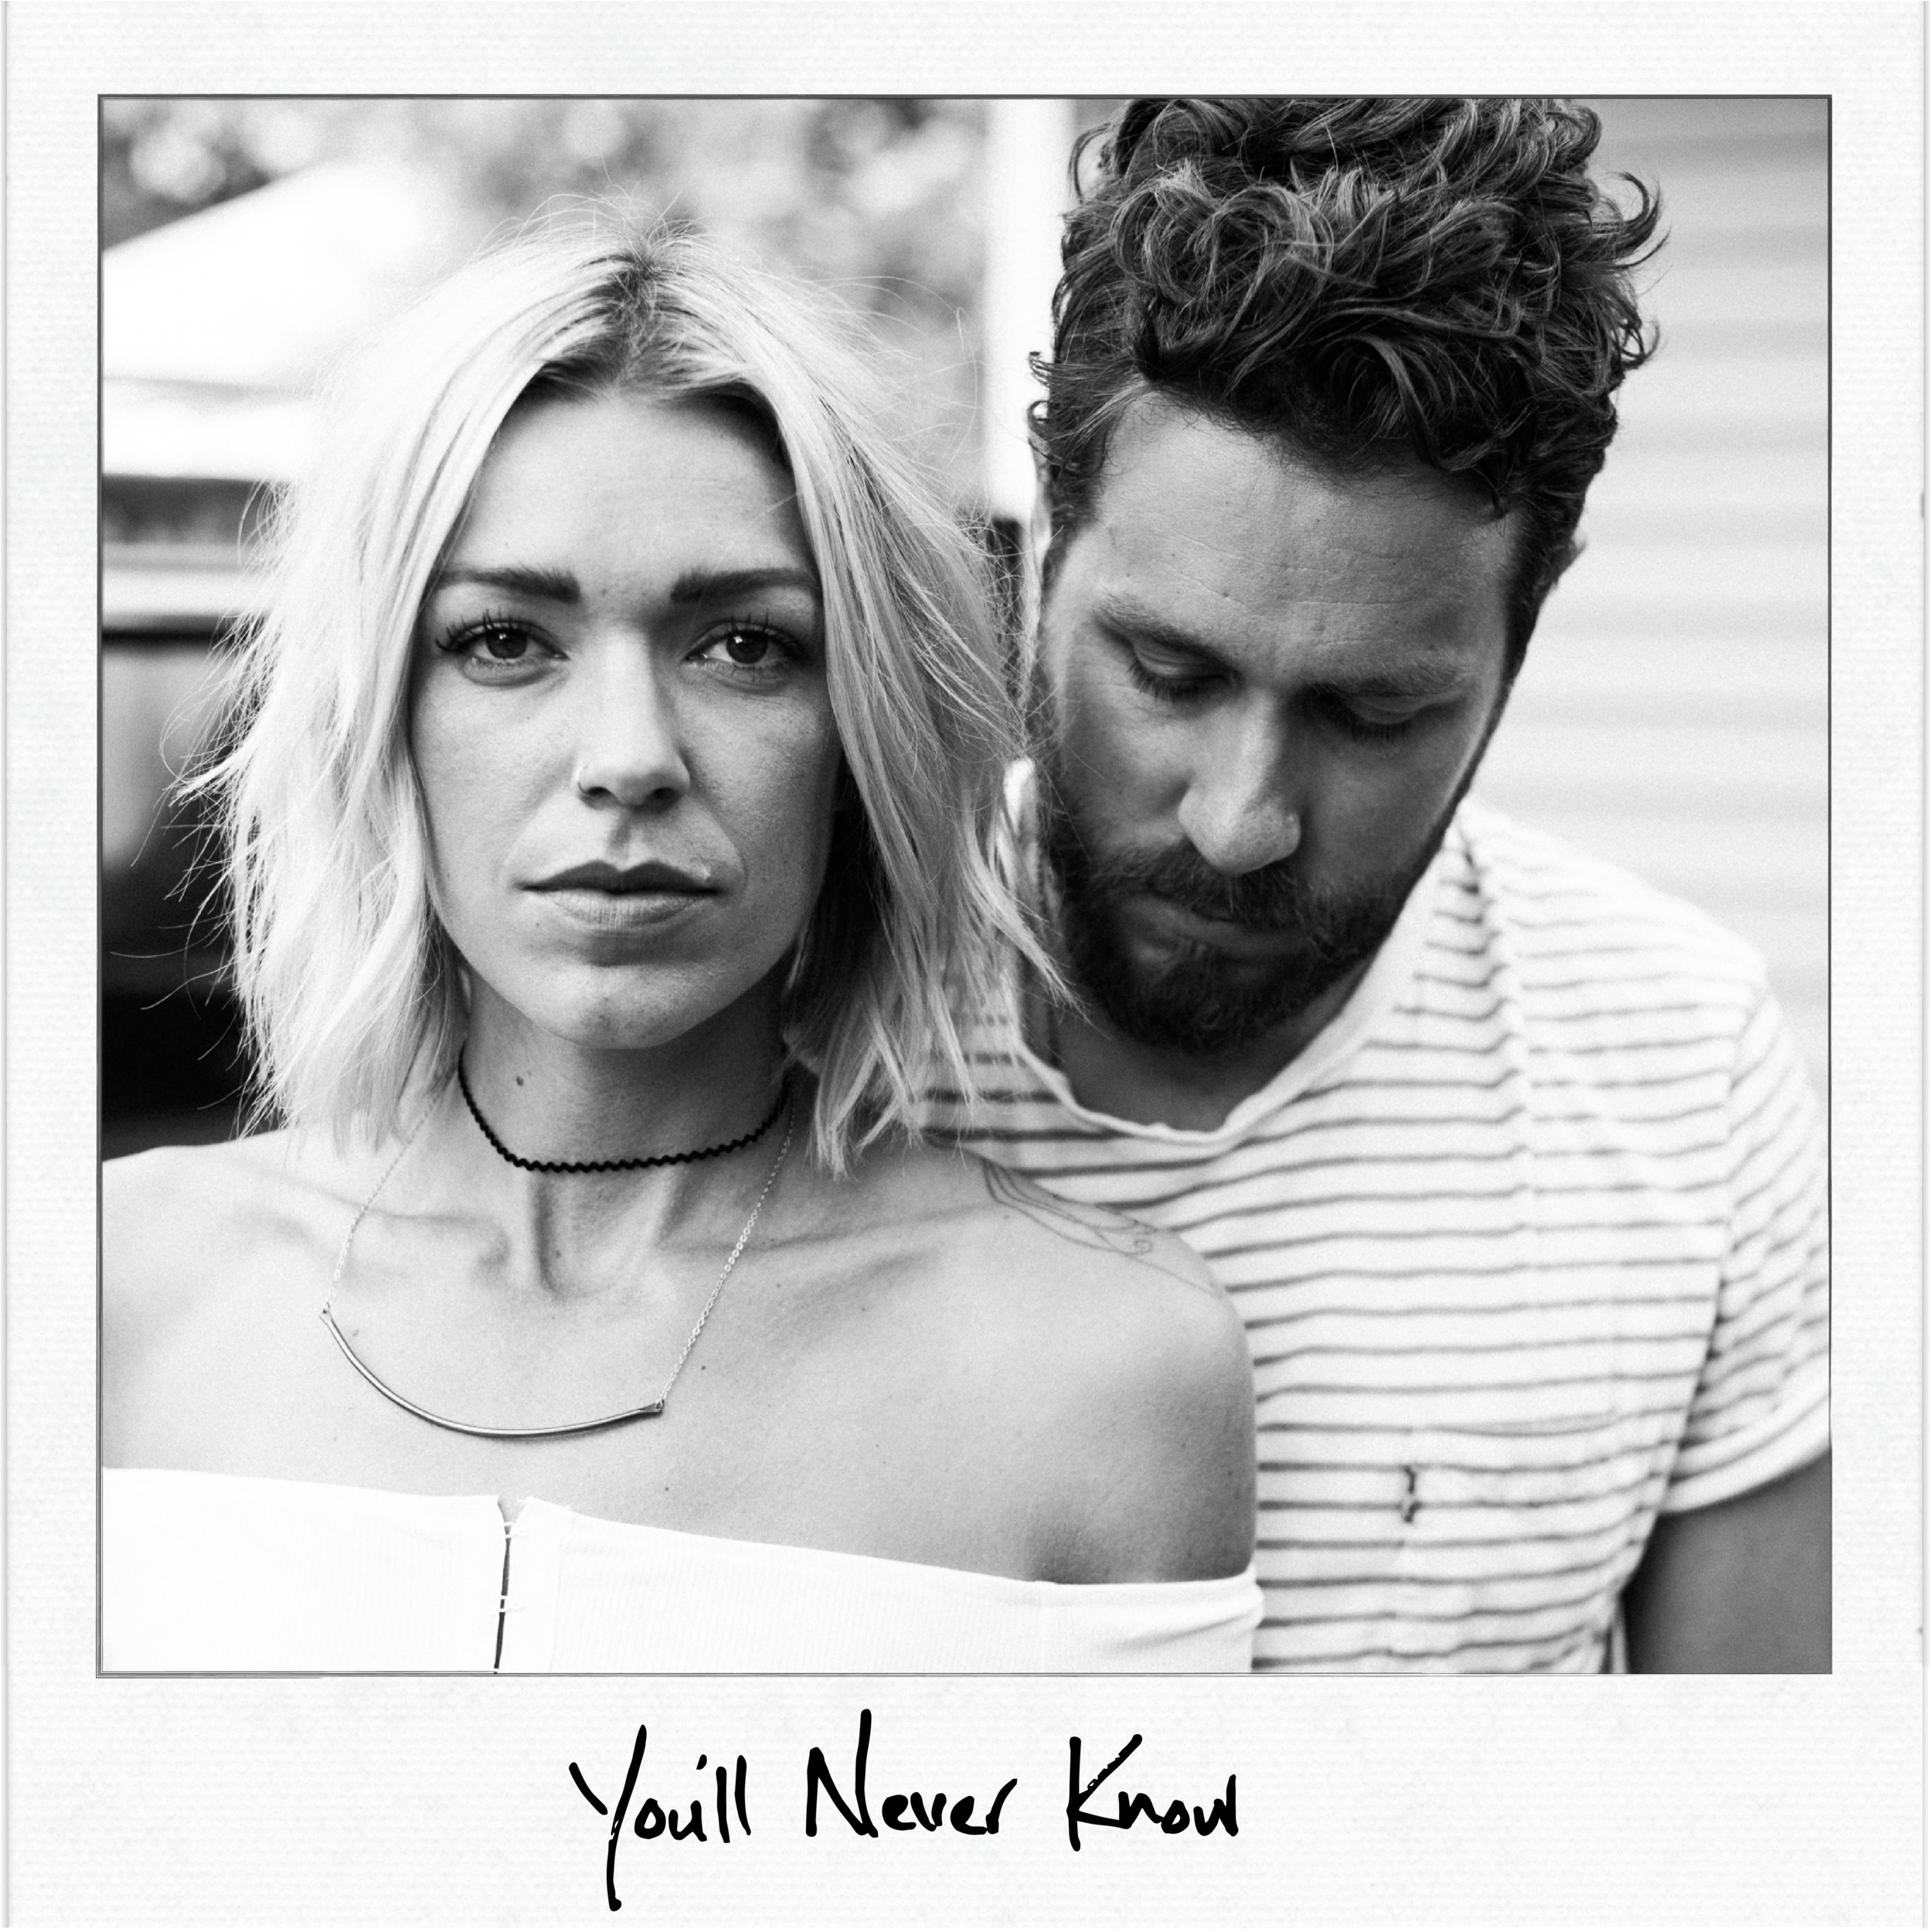 Youll Never Know - Cover Art-01 2.png